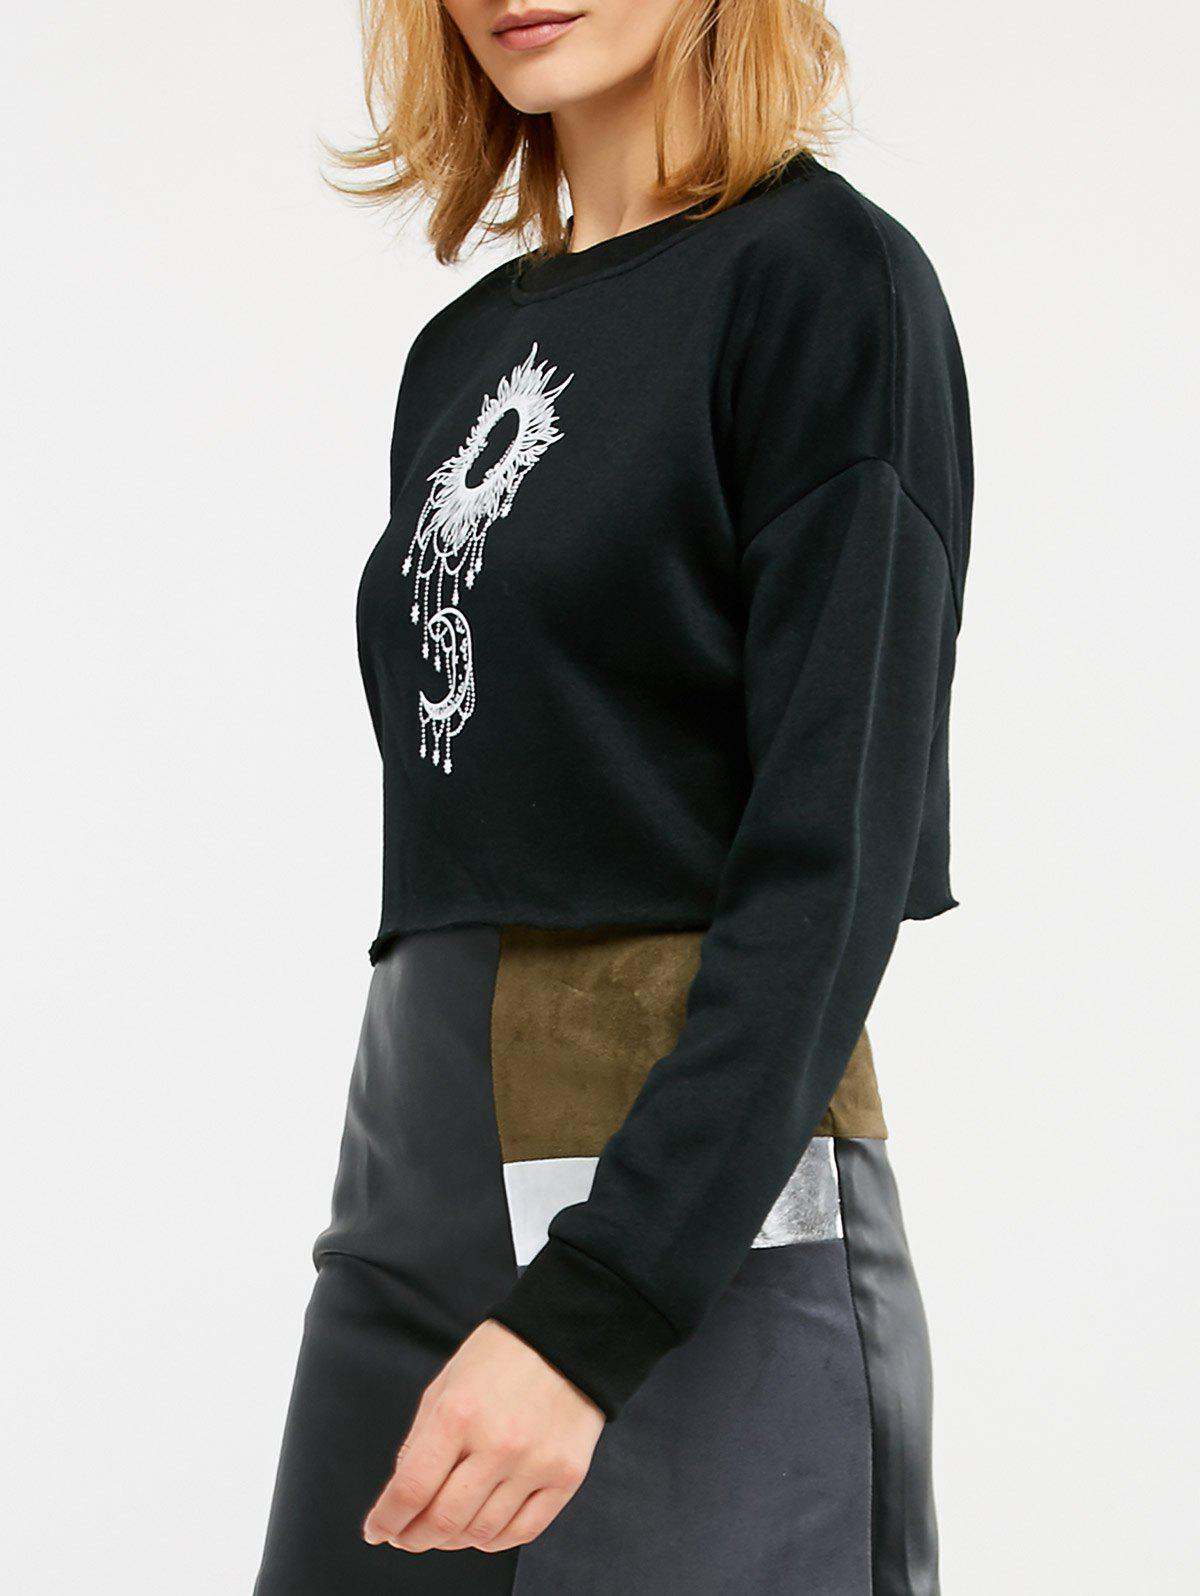 Sun and Moon Print Cropped Sweatshirt фото